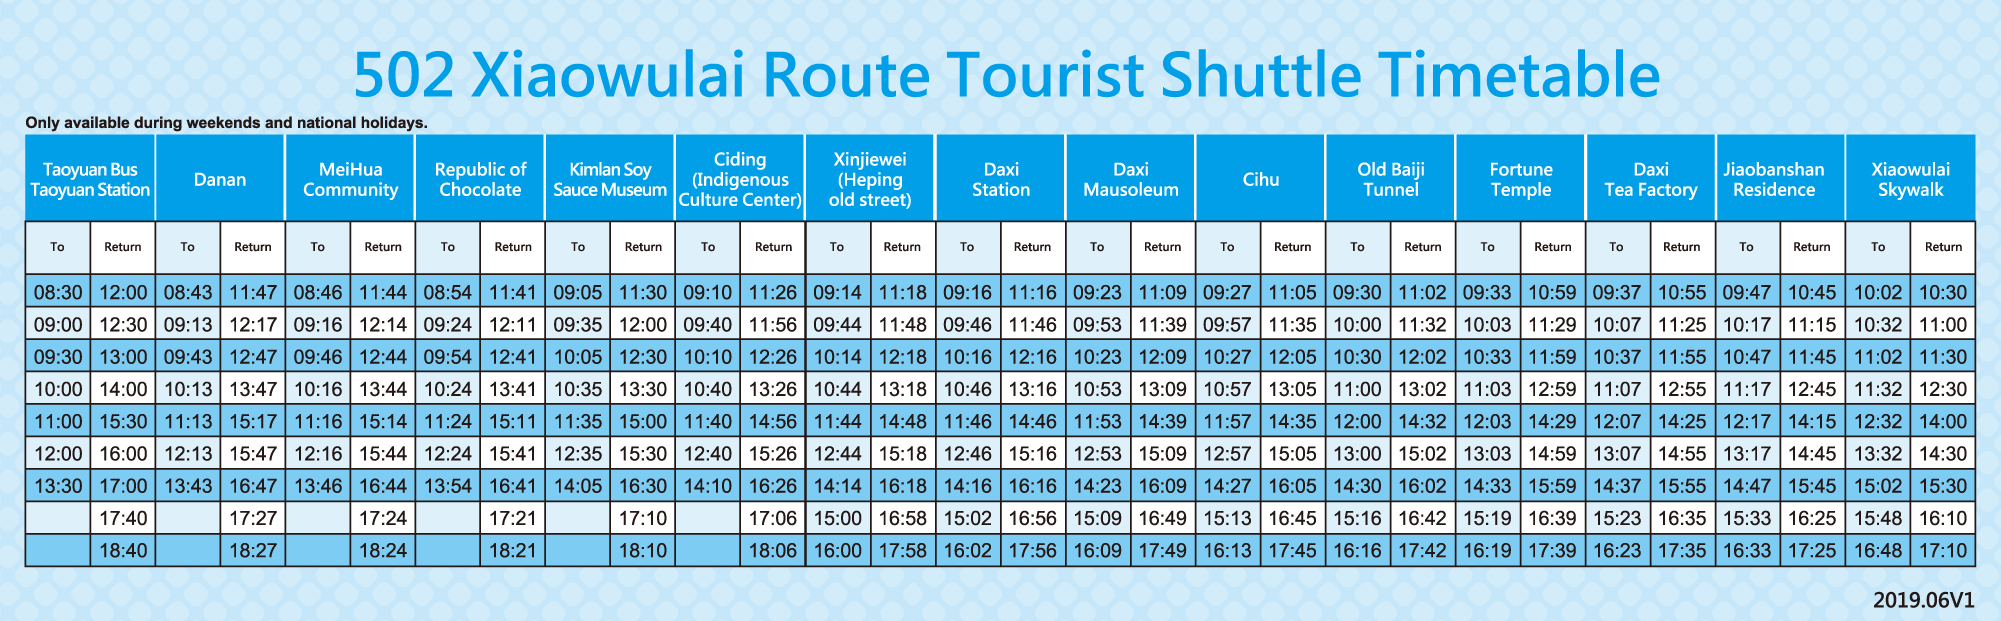 Xiaowulai Route Timetable